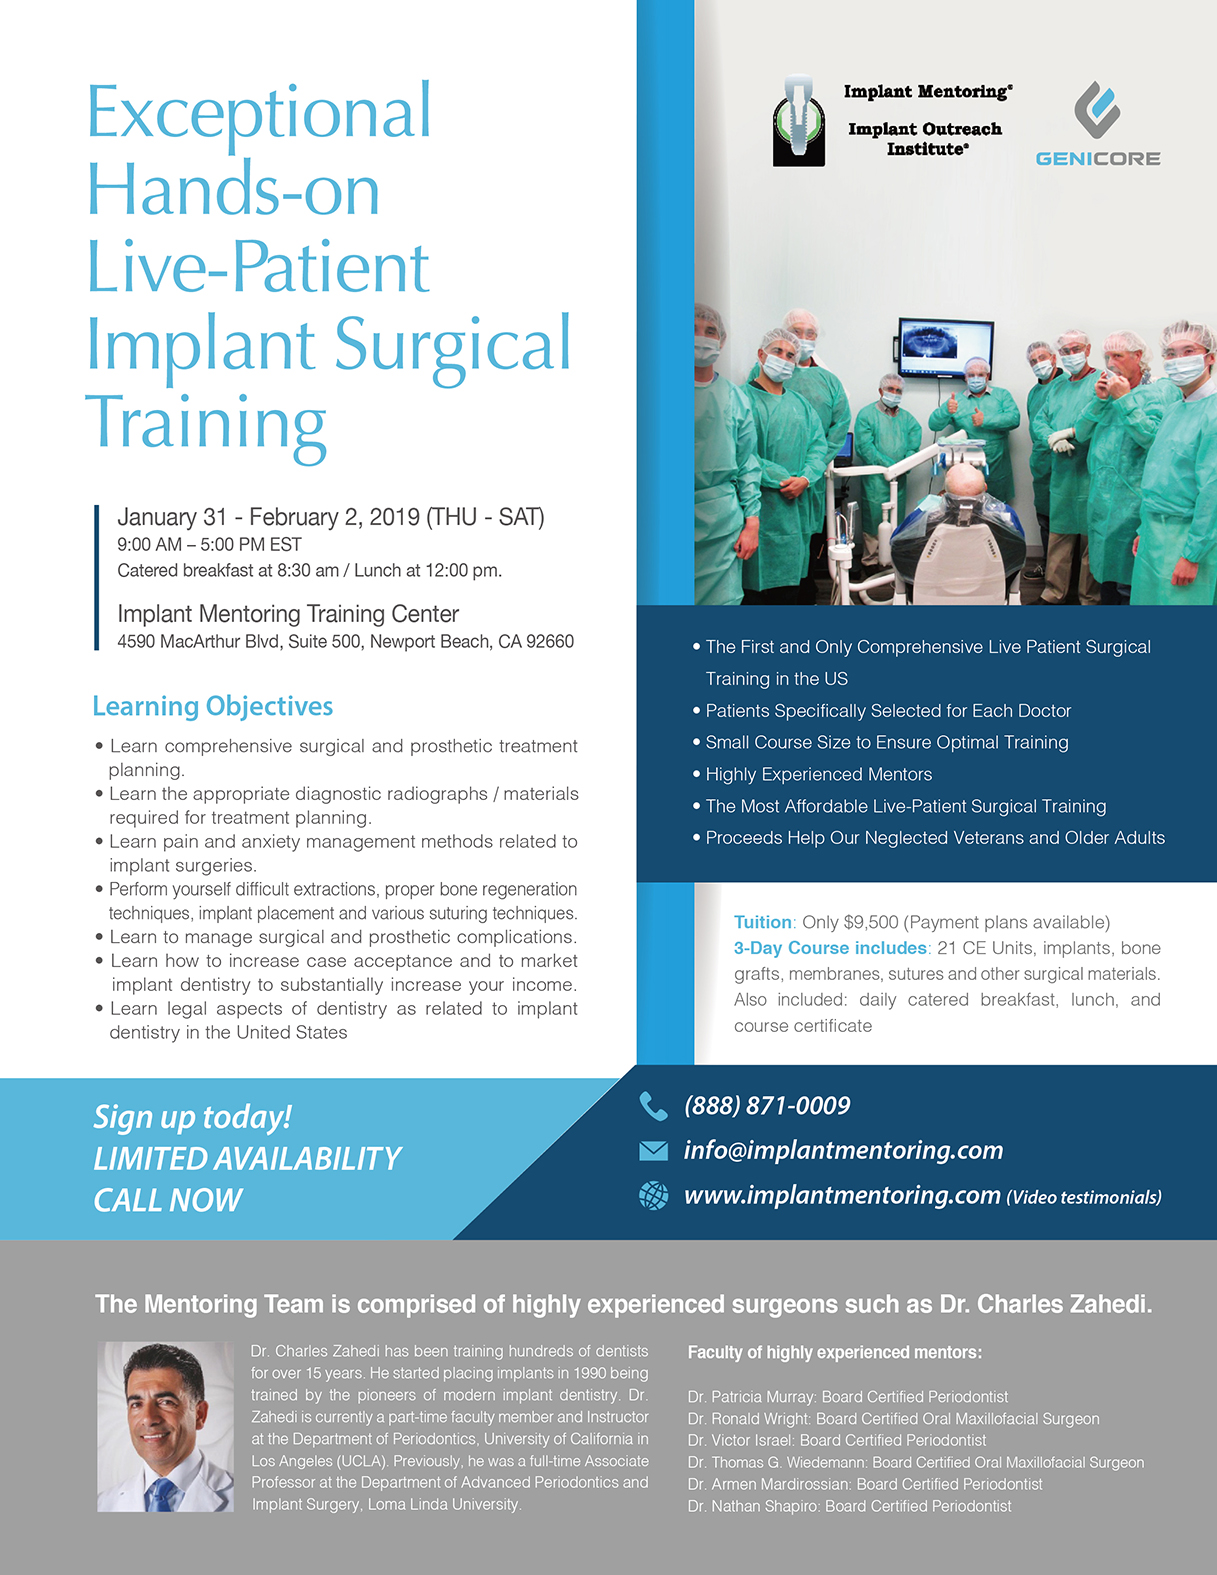 Exceptional Hands-on Live-Patient Implant Surgical Training - January 31 to February 2, 2019